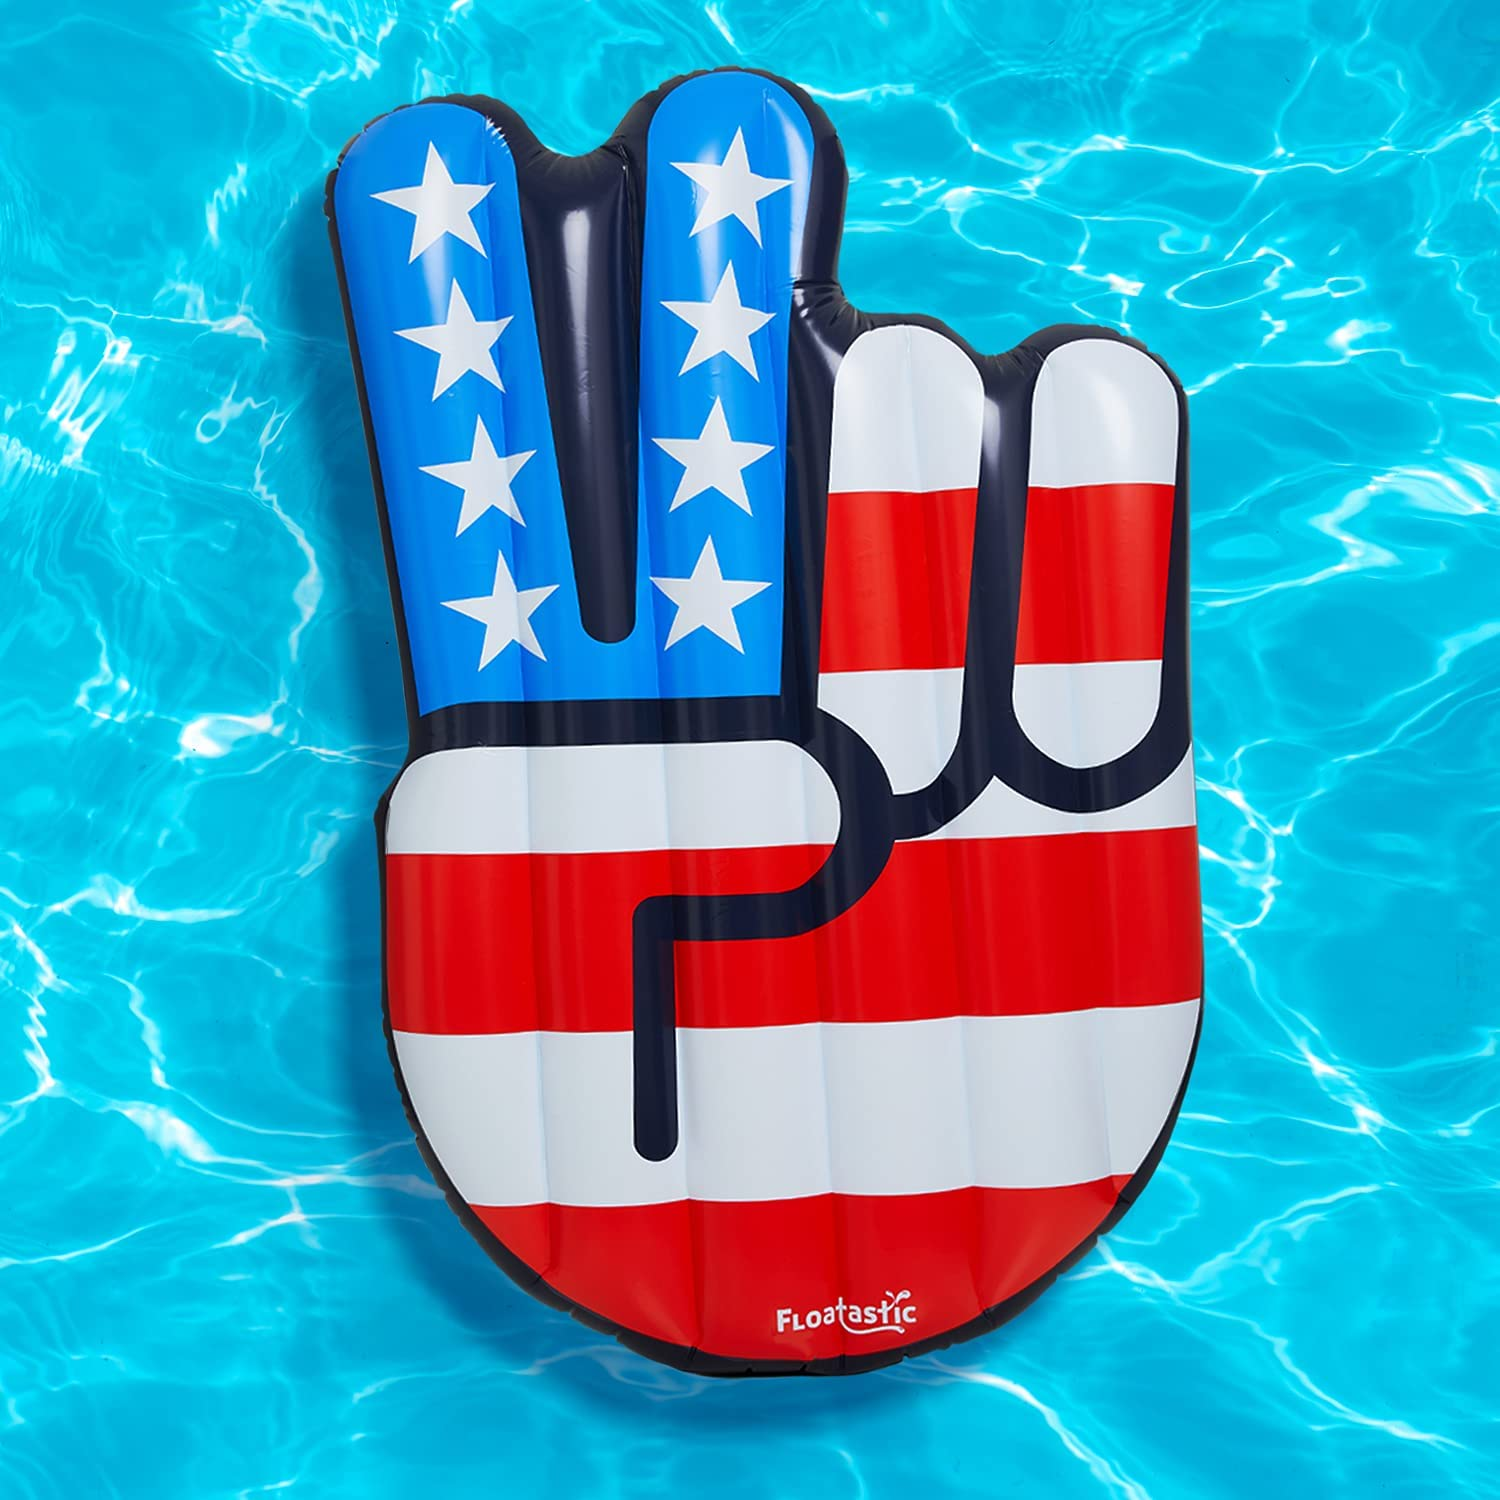 Floatastic USA Peace Inflatable Pool Float - Giant Pool Floats Adult Size - Ultimate Lounger Raft for Pool Party & Beach - American Flag Pool Toy Floaties for Fun, Style & Comfort